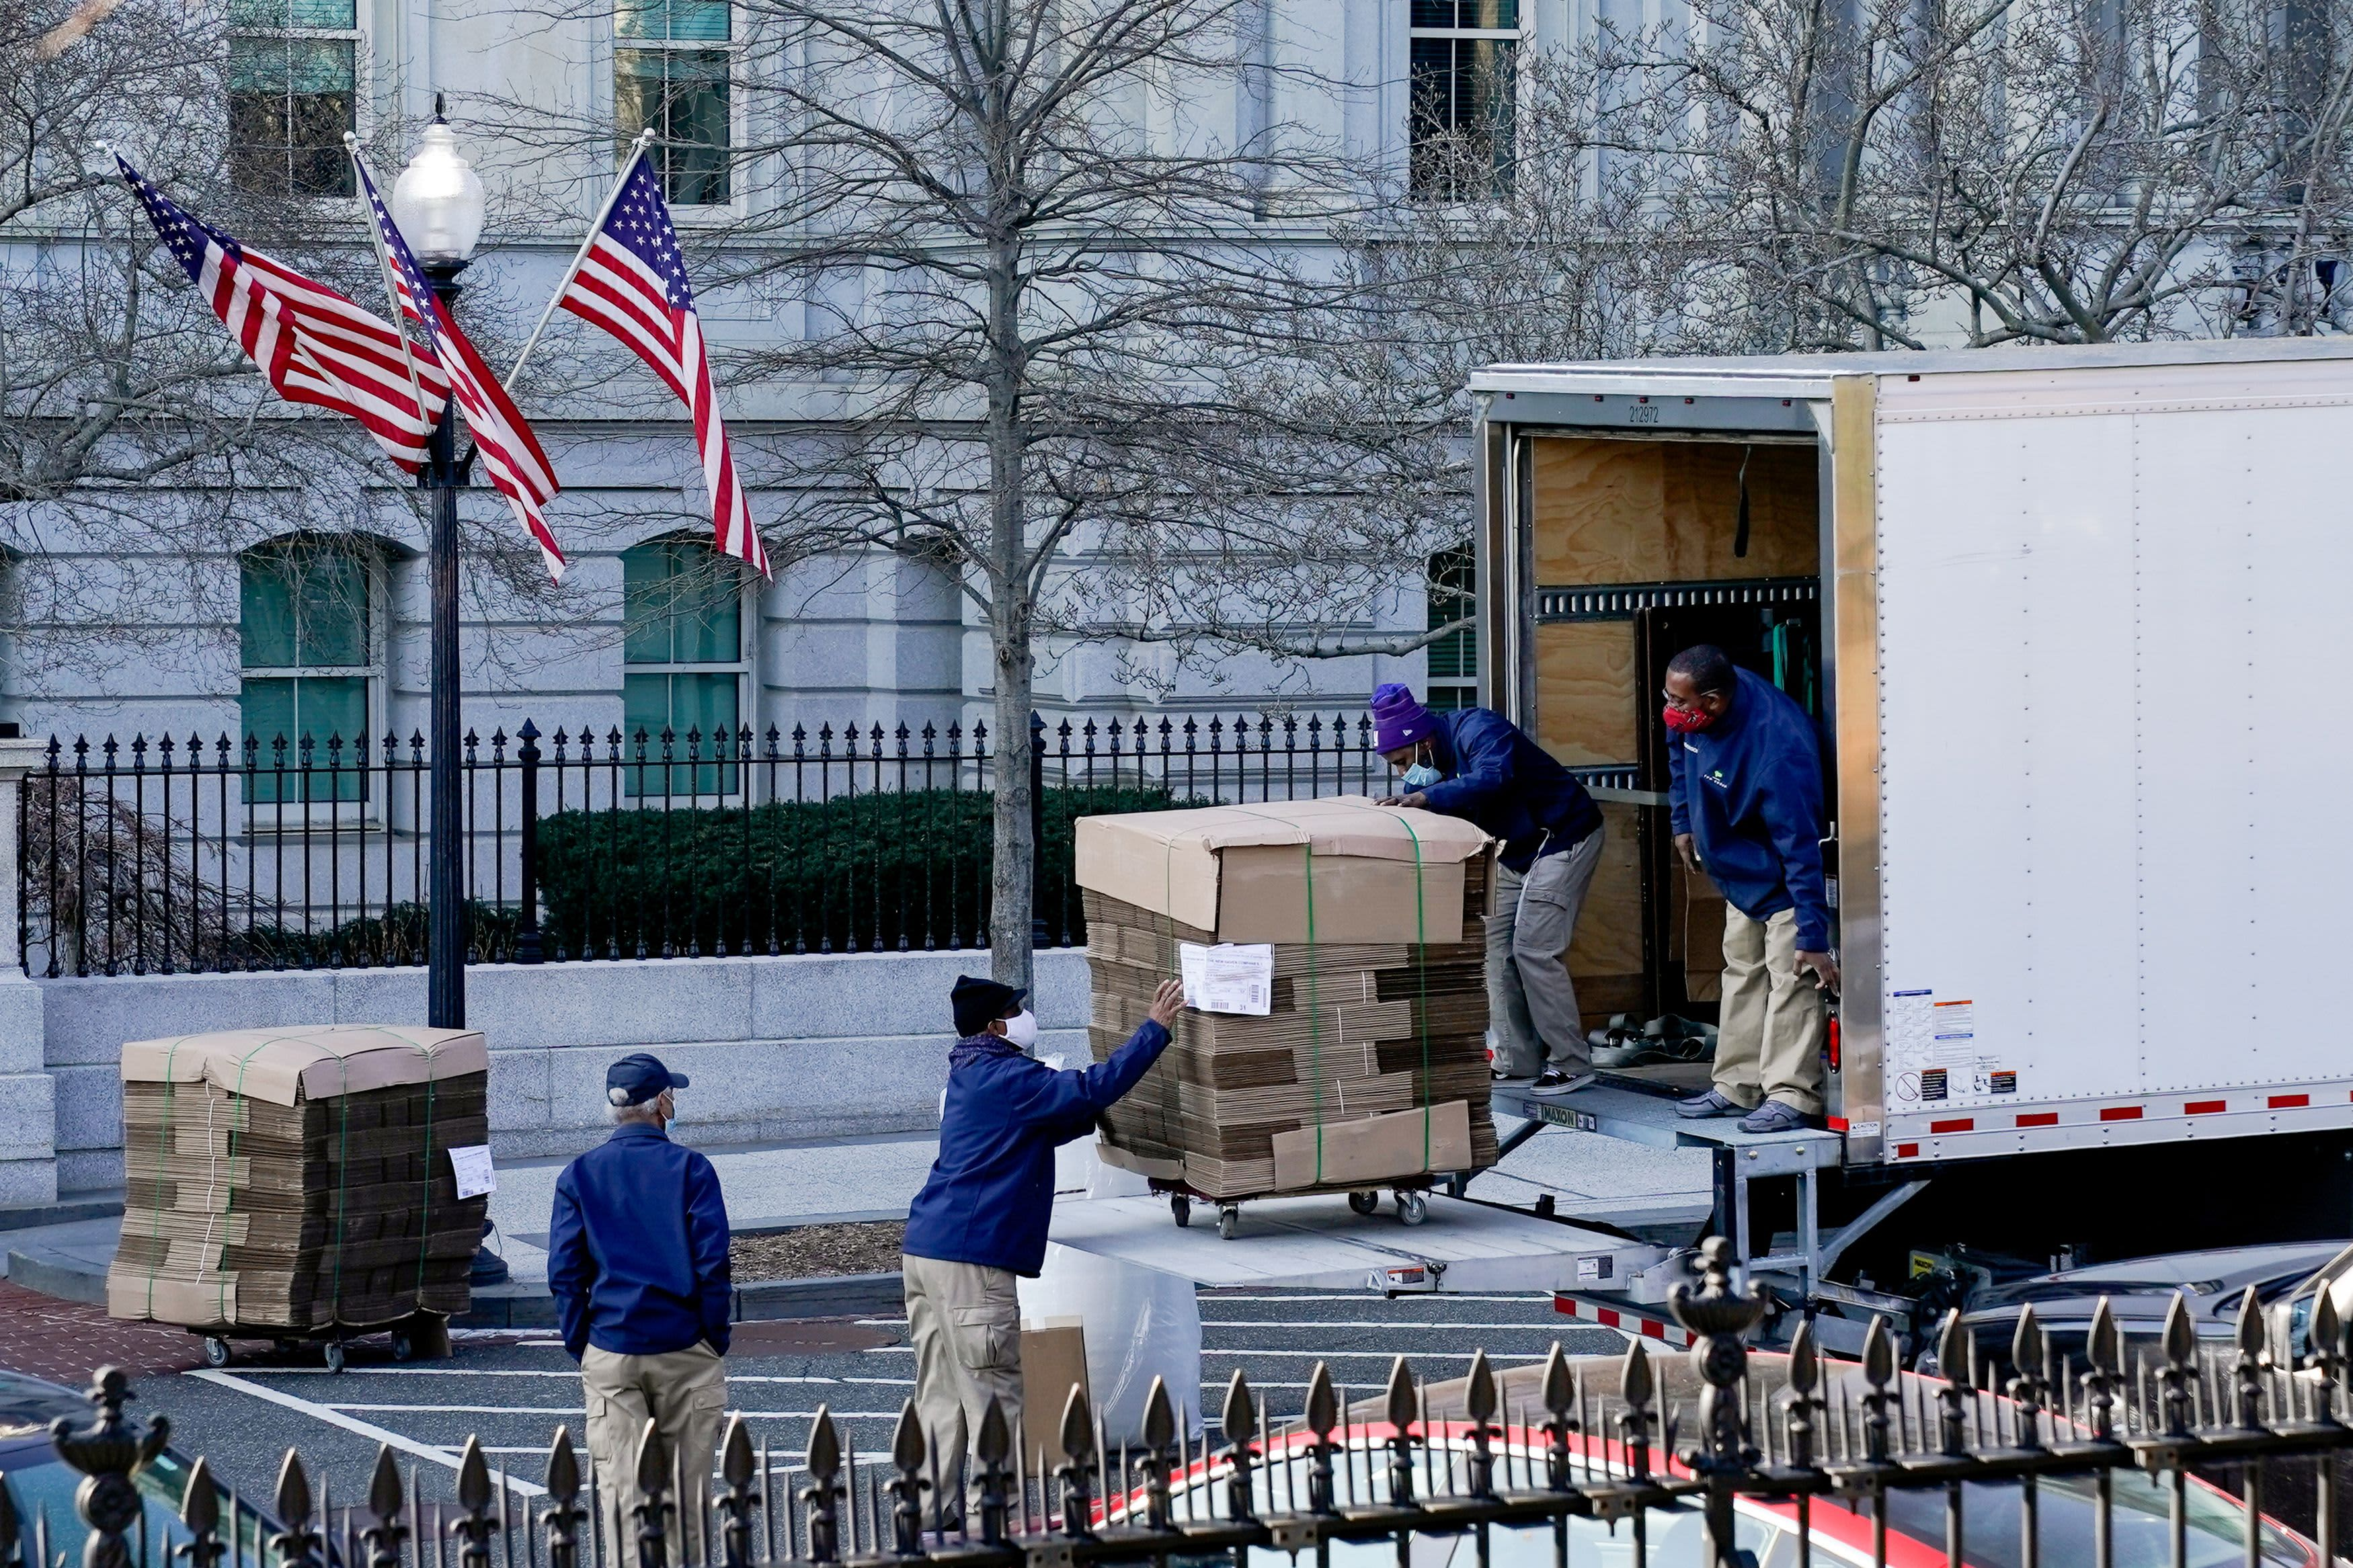 Moving day approaching at the Trump White House